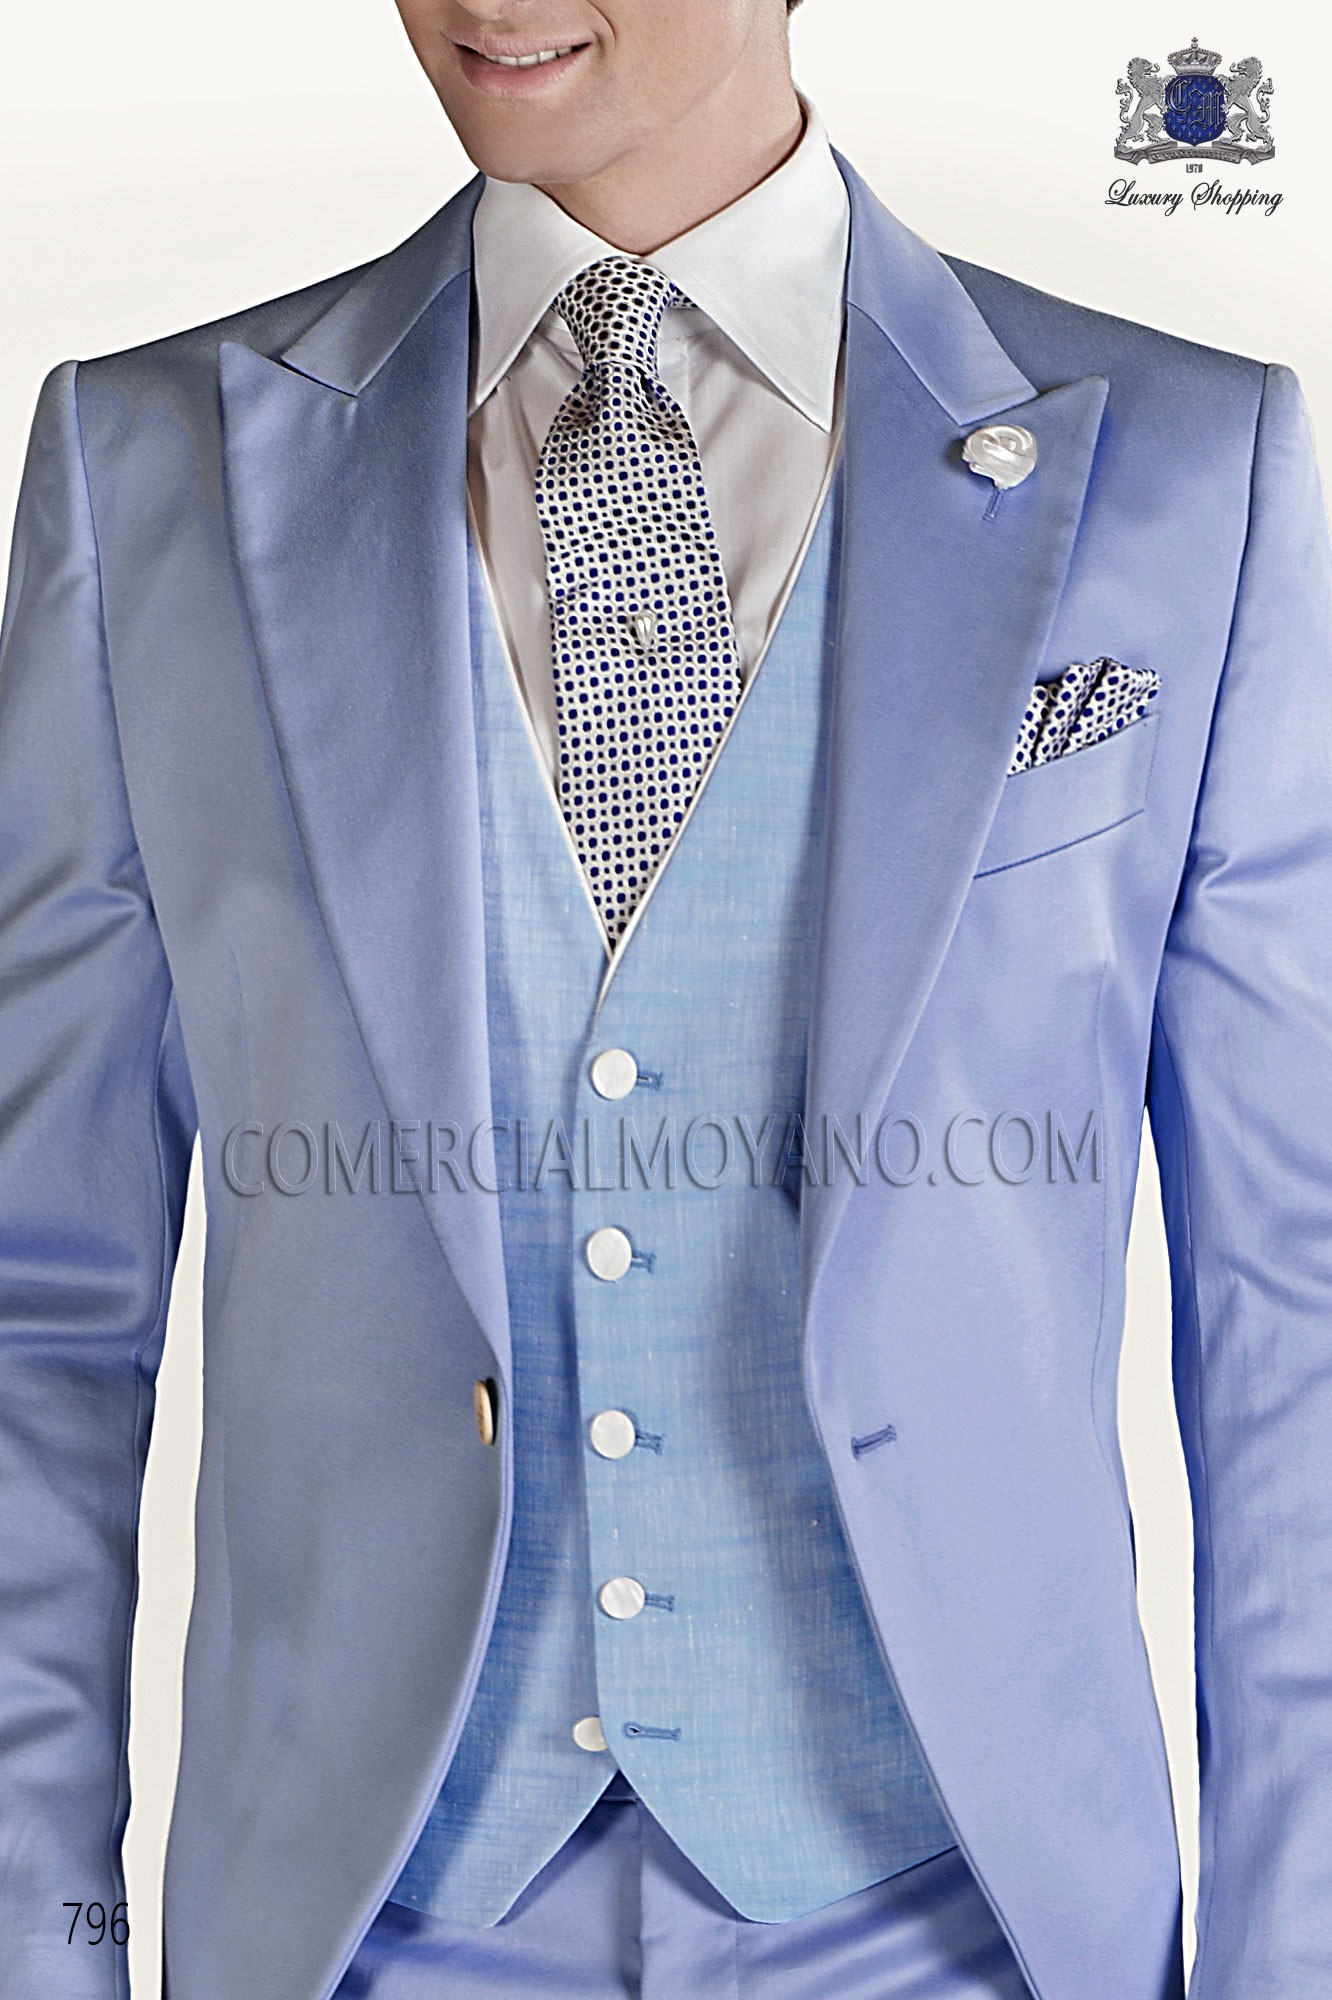 Hipster blue men wedding suit, model: 796 Ottavio Nuccio Gala Collection